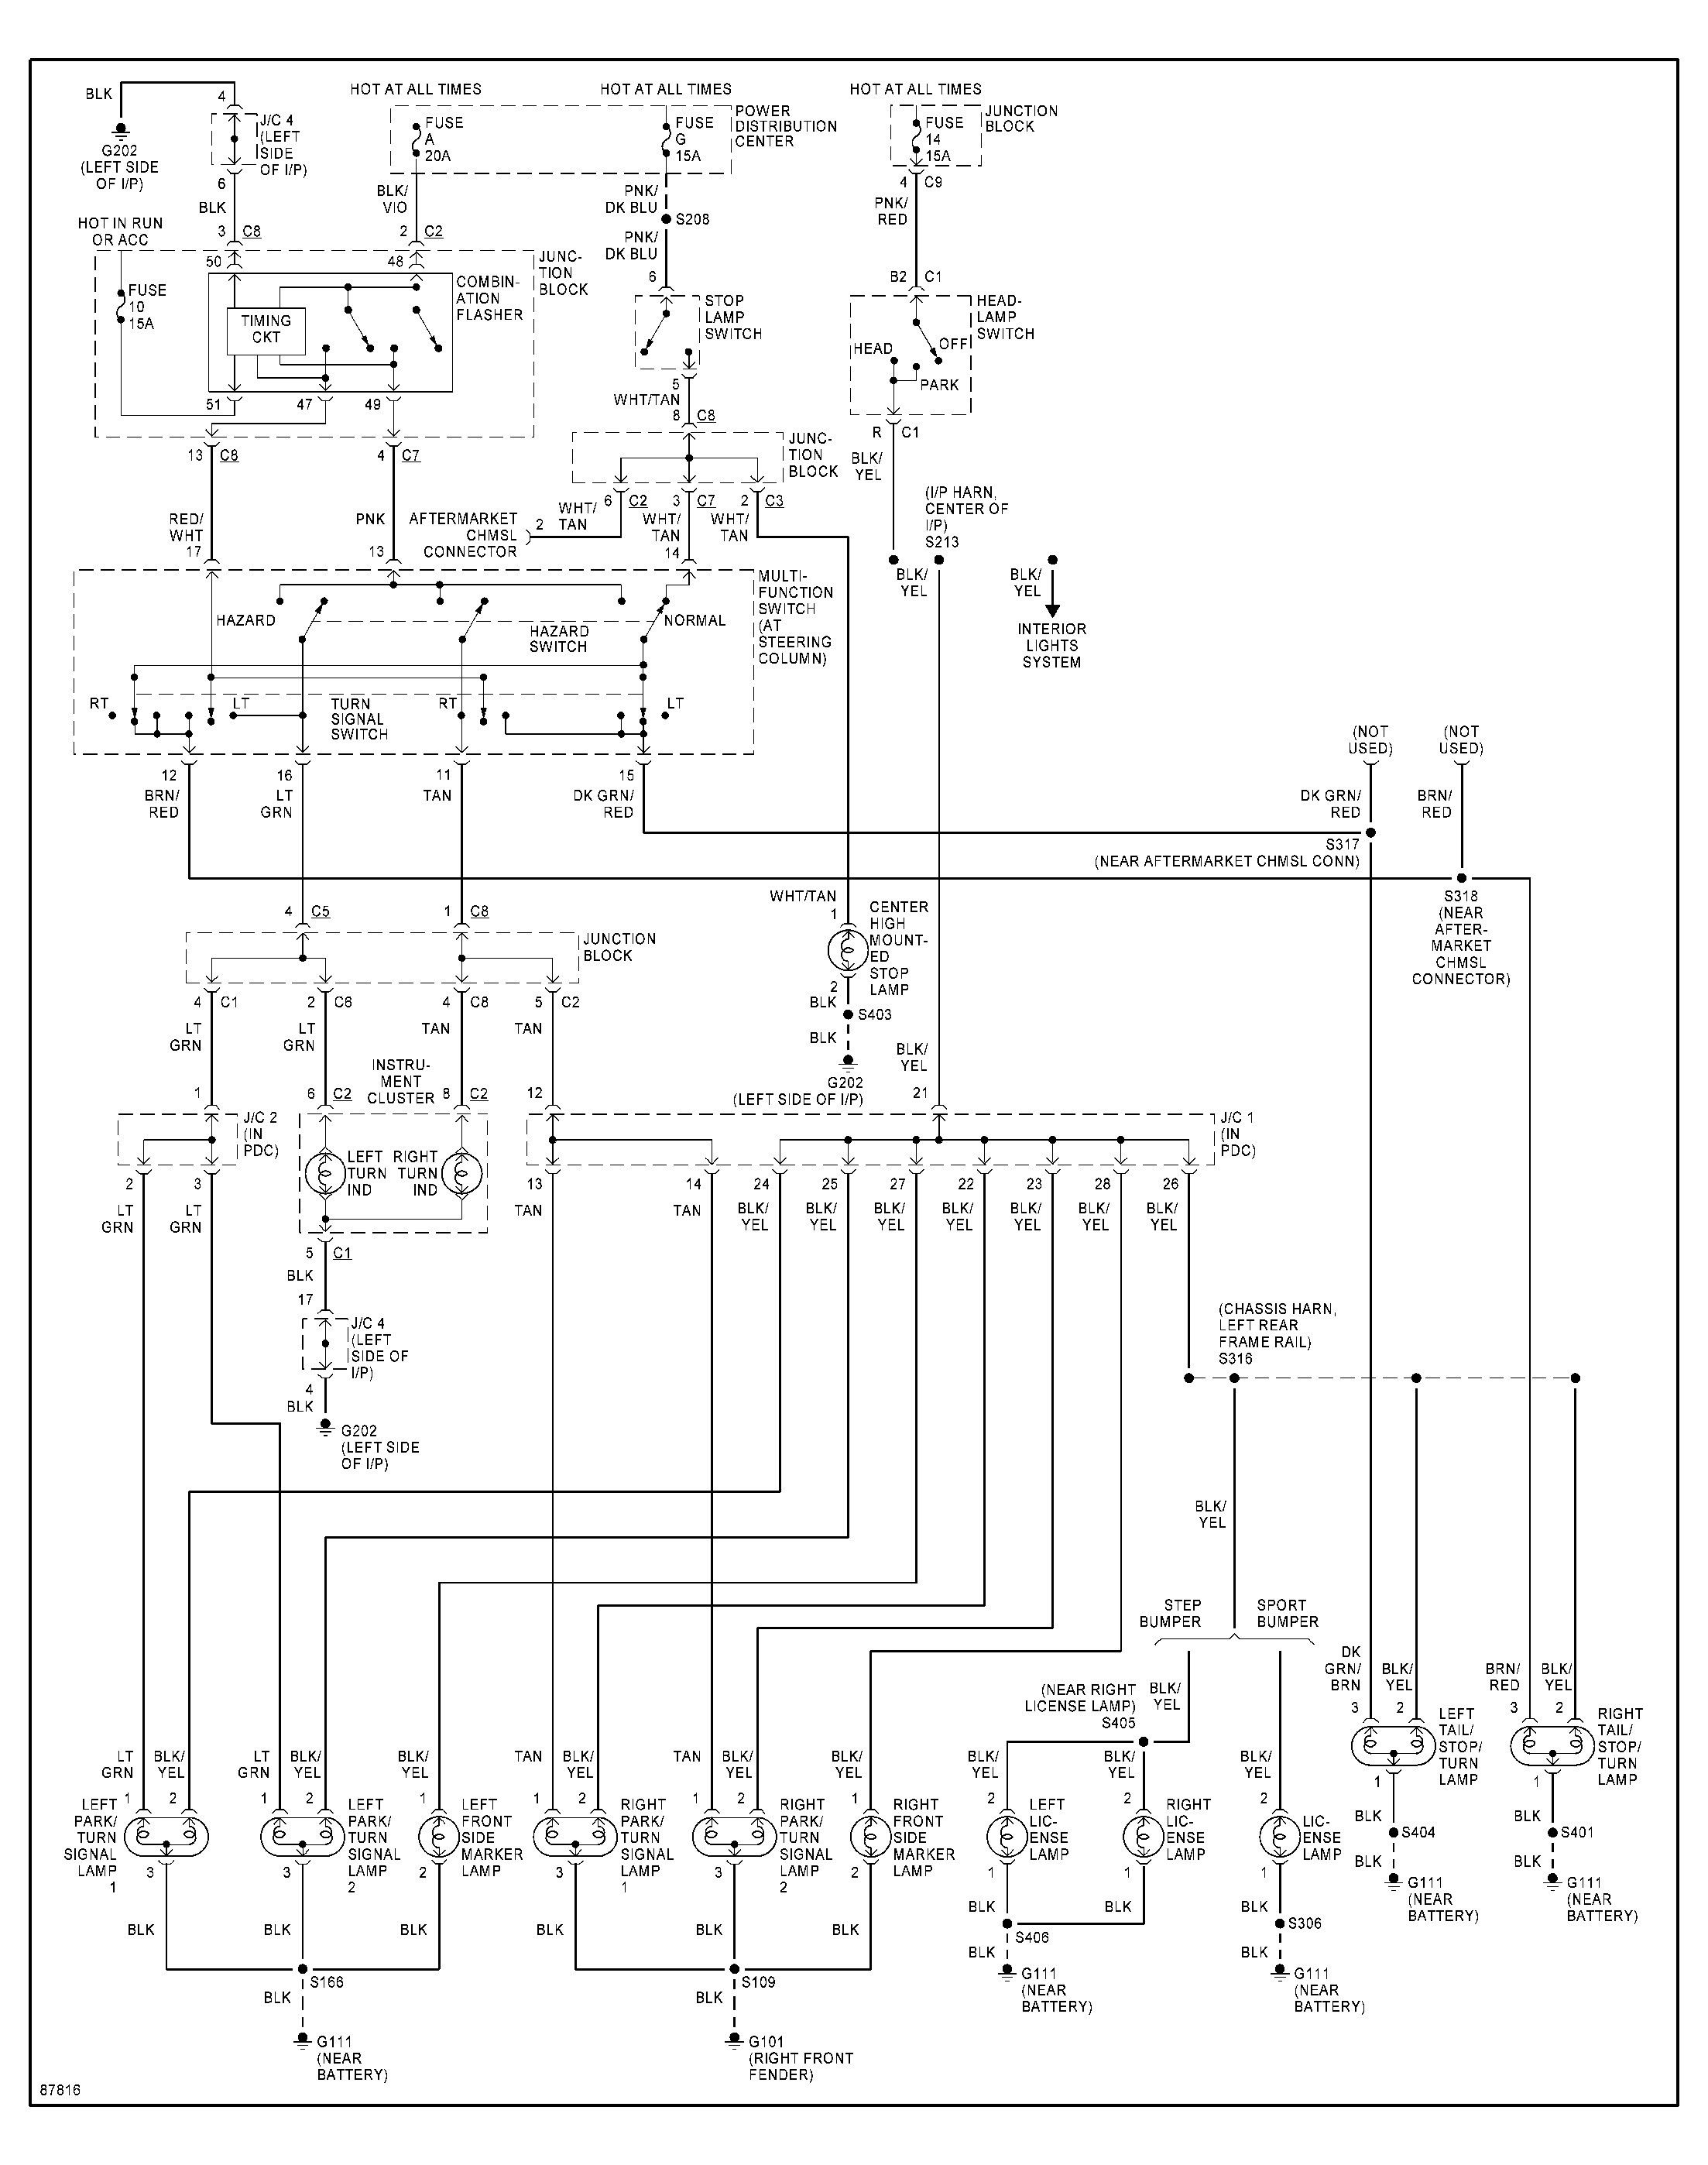 [DIAGRAM_38EU]  DIAGRAM] 96 Dodge Ram Ac Wiring Diagram Picture FULL Version HD Quality  Diagram Picture - CRIATTIVADIAGRAMACAO.EYEPOWER.IT | 96 Dodge Ram Wiring Diagram |  | criattivadiagramacao.eyepower.it